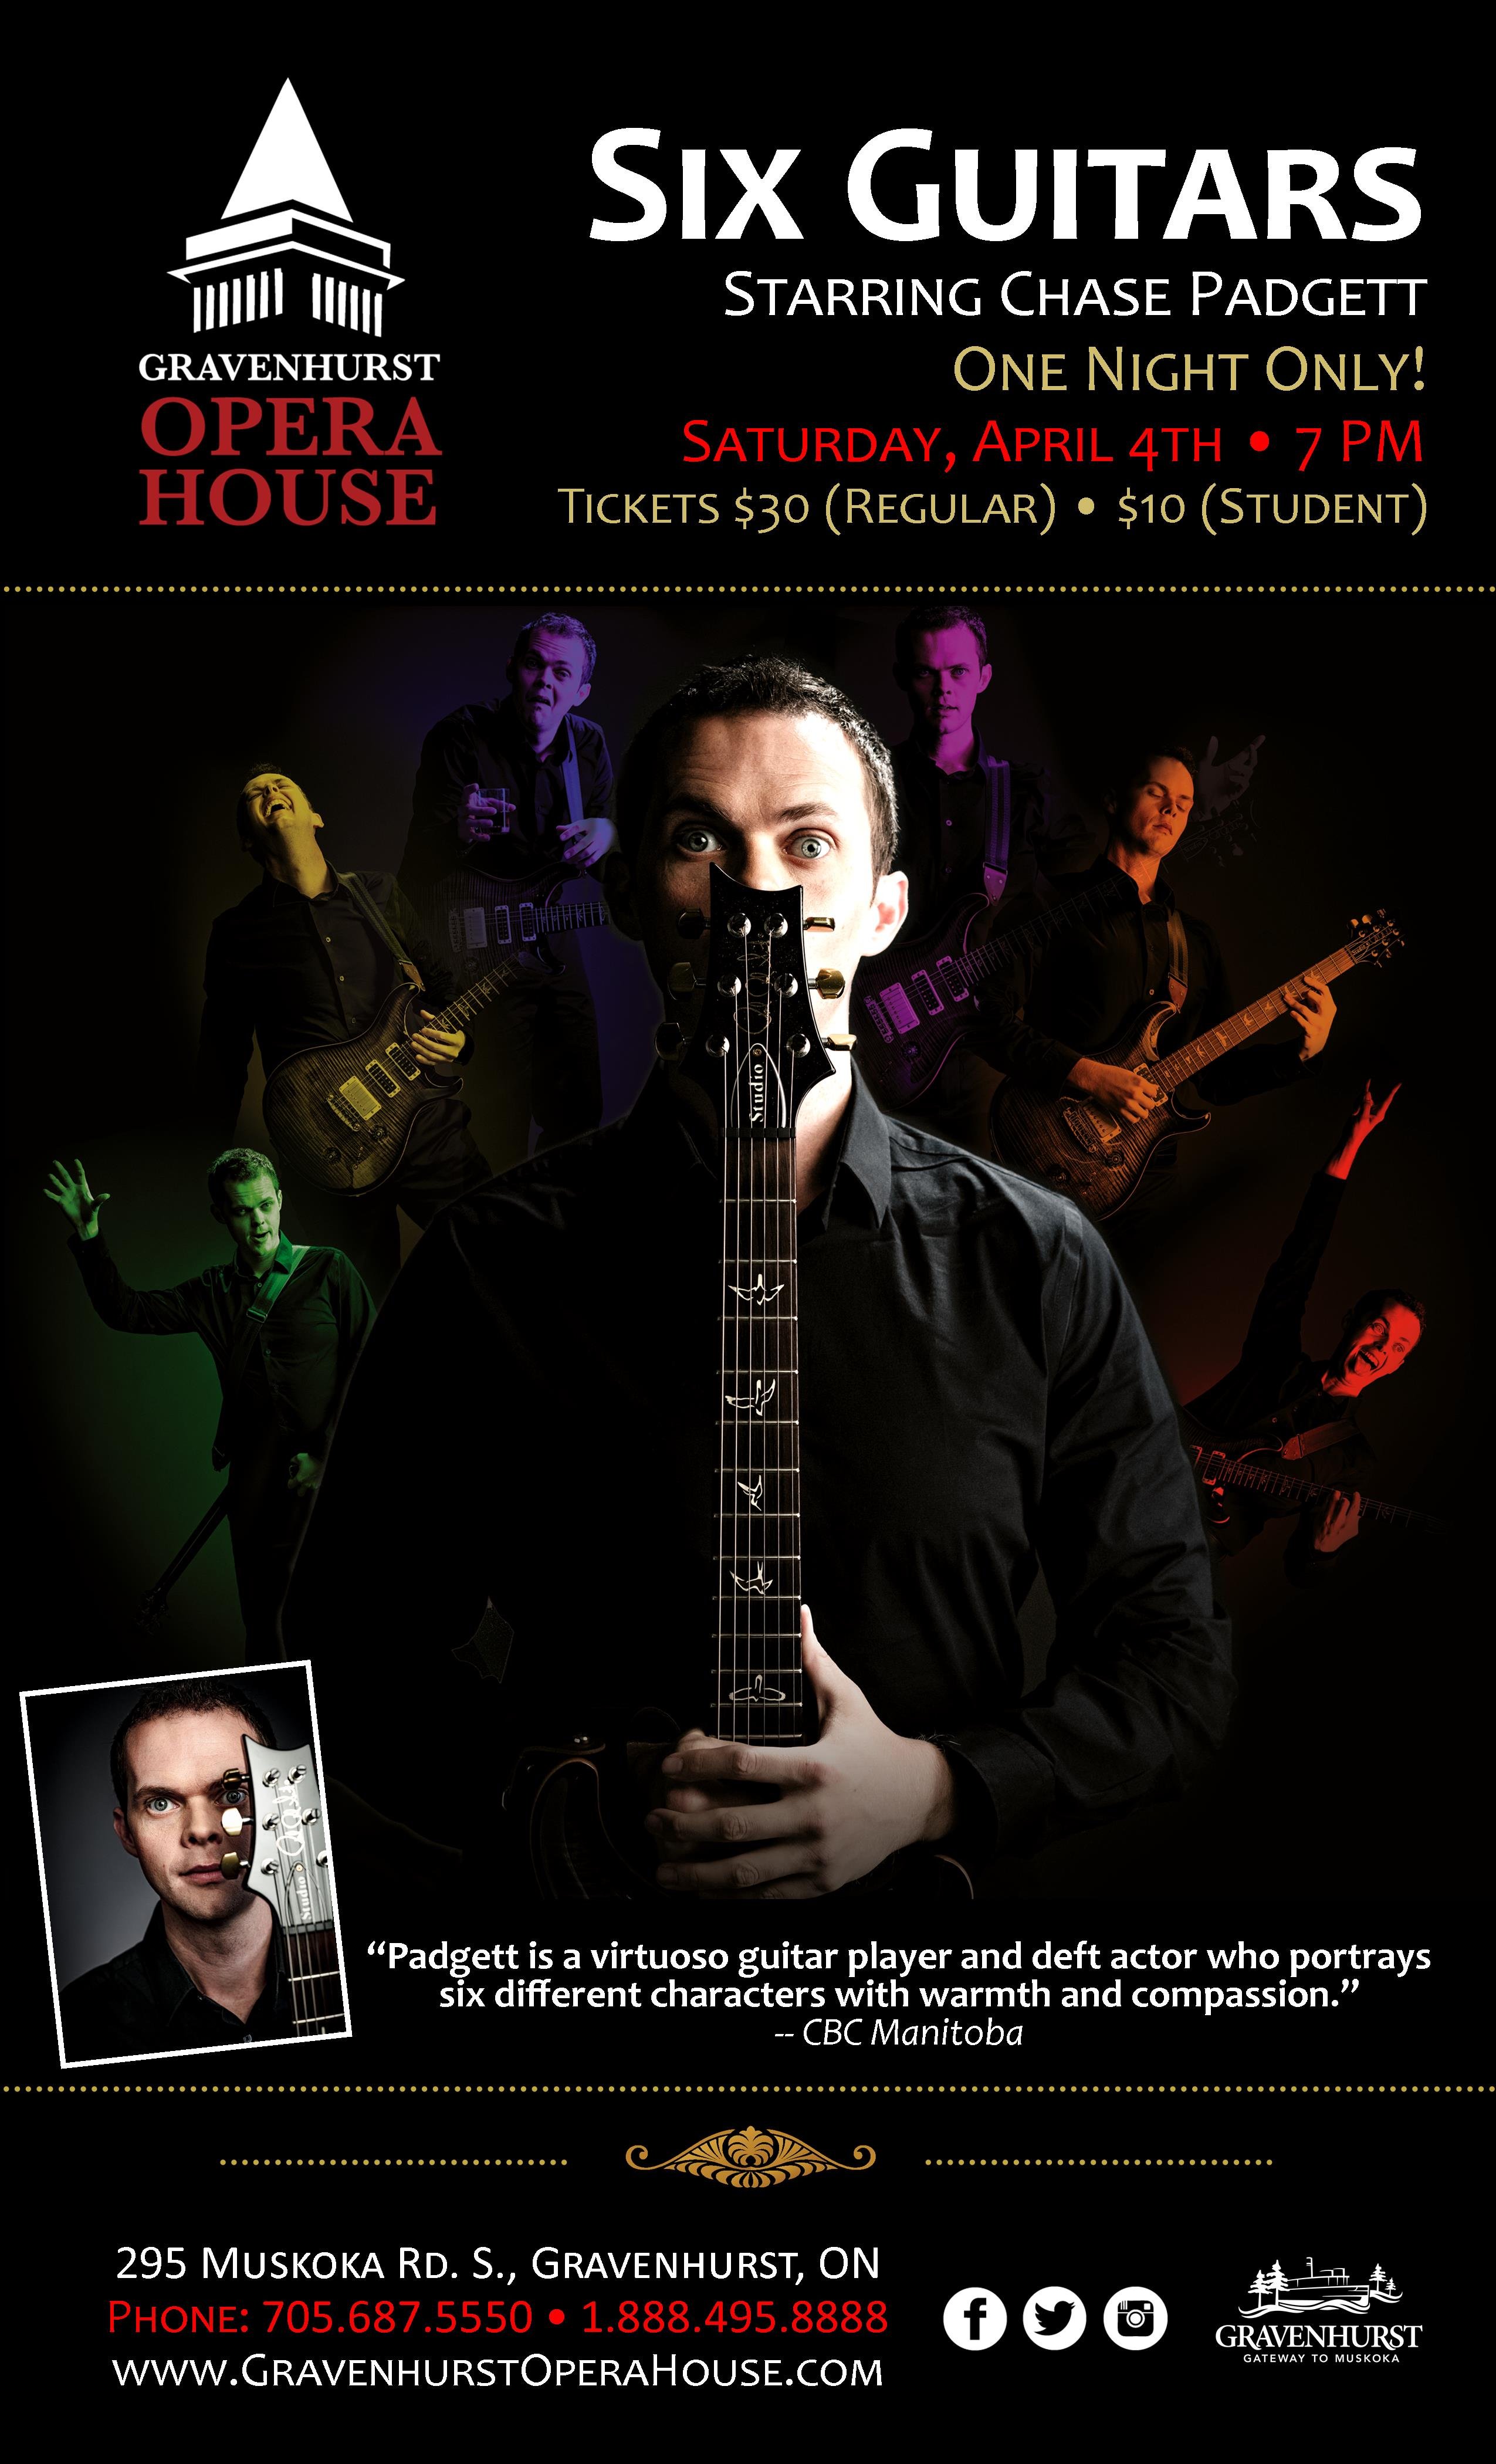 Promotional Poster for Six Guitars concert April 4th at the Gravenhurst Opera House